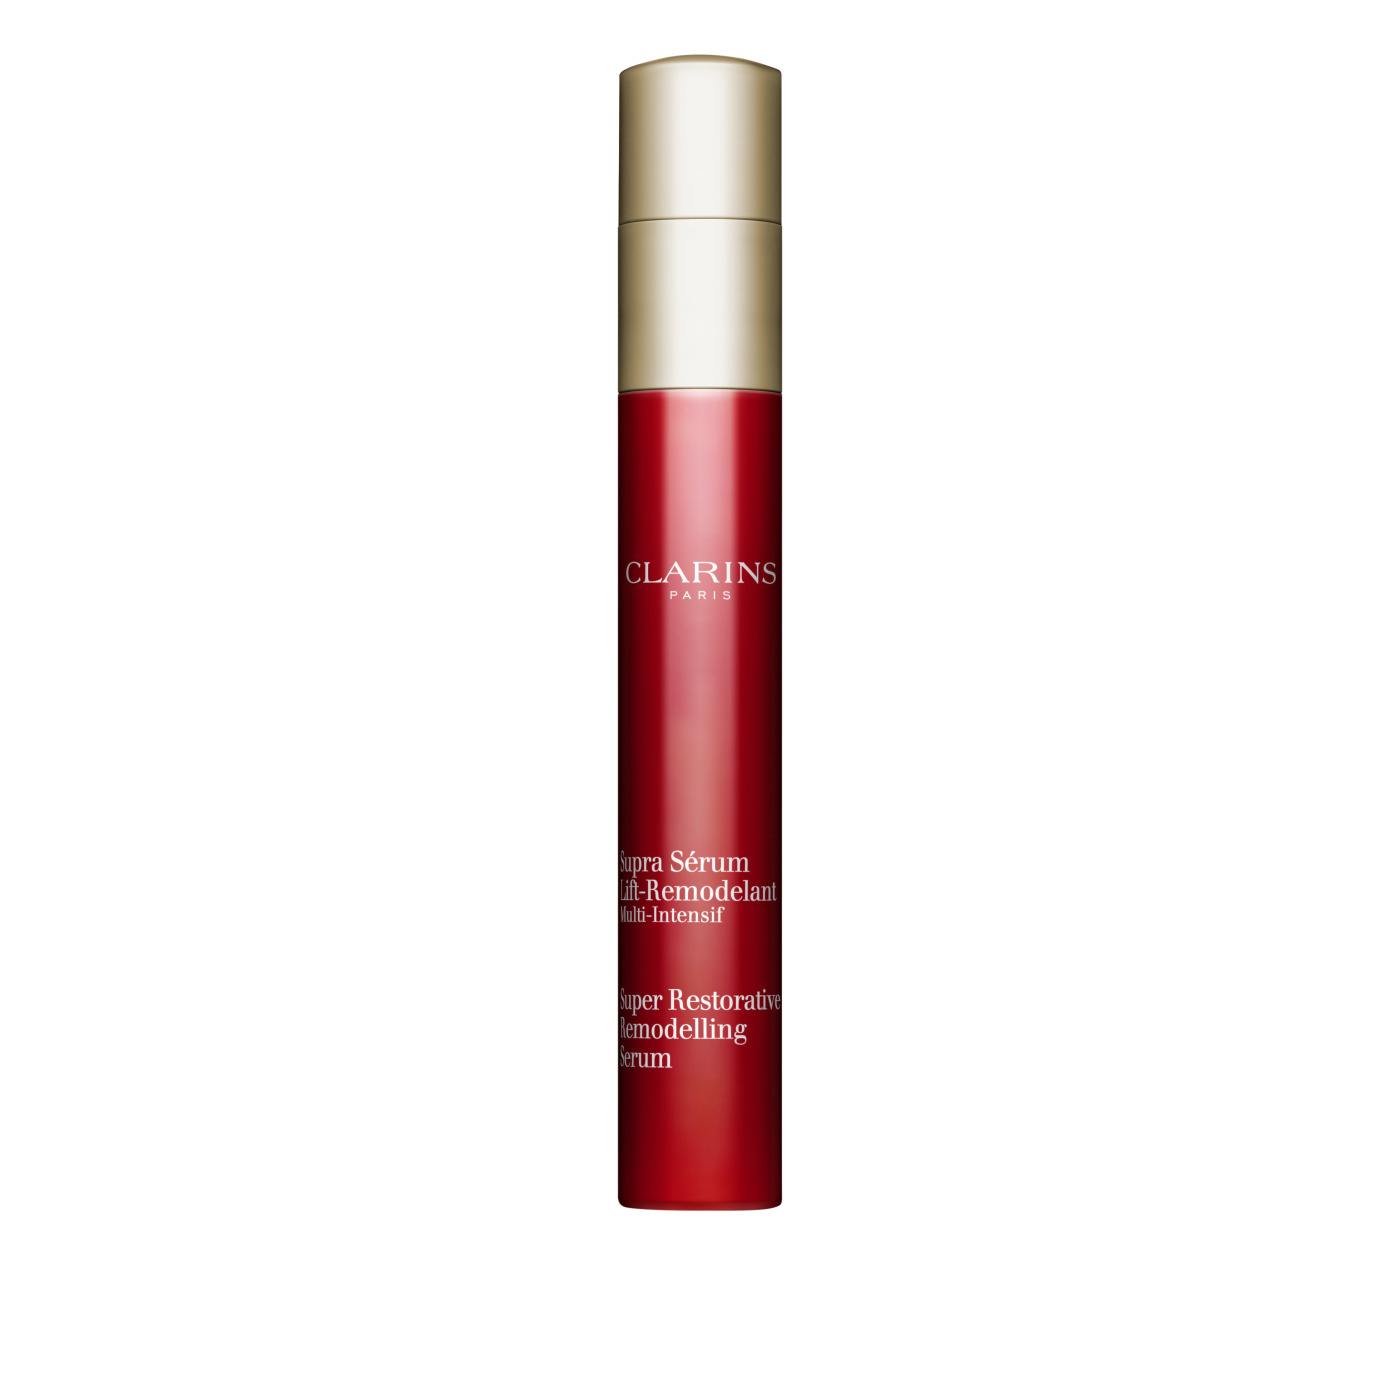 Supra Sérum Lift Remodelant Multi Intensif 10 Ml Clarins